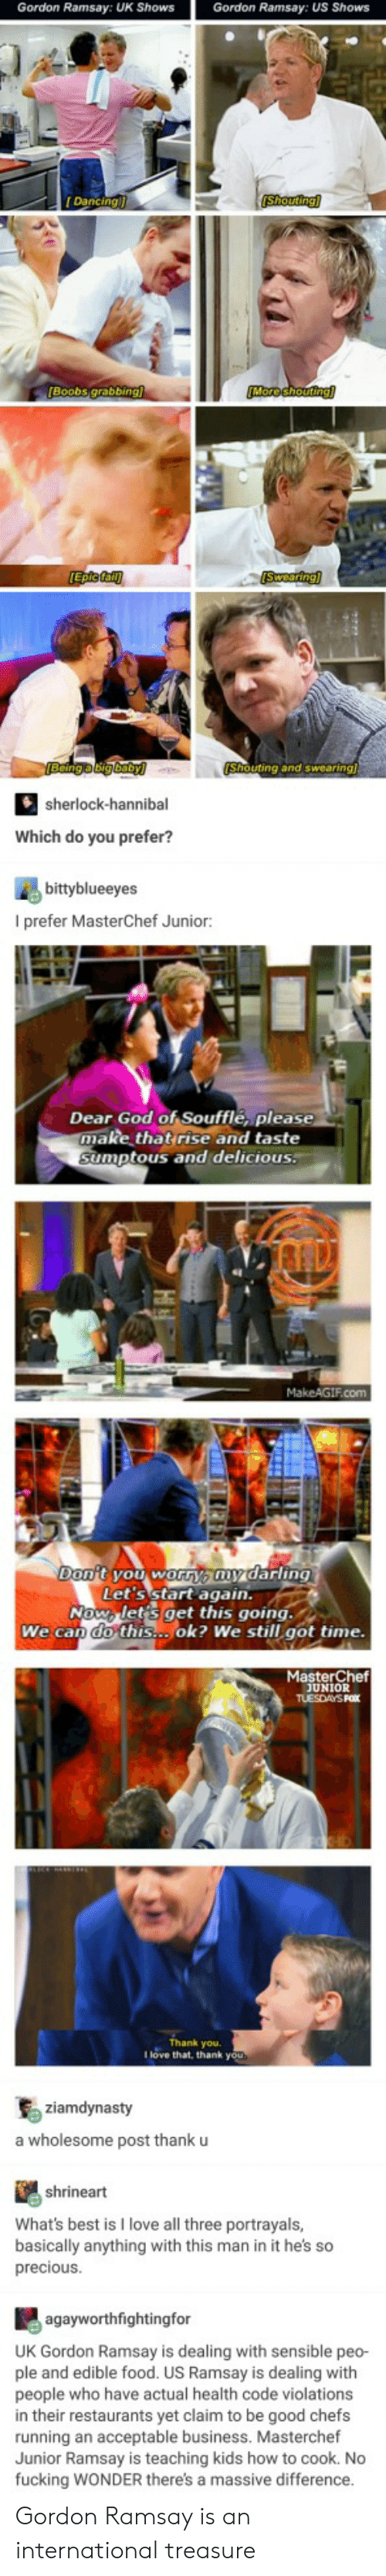 masterchef: Gordon Ramsay: UK Shows  Gordon Ramsay: US Shows  Dancing  Shouting  Boobs grabbir  uting and swearing  sherlock-hannibal  Which do you prefer?  bittyblueeyes  I prefer MasterChef Junior:  Dear God of Soufflé, please  make thatrise and taste  umptous and delicious.  Let's start agaiD.  Now lets get this going.  We can do this...ok? We still got time  MasterChef  UNIOR  Thank you.  I love that, thank you  ziamdynasty  a wholesome post thank u  shrineart  What's best is I love all three portrayals,  basically anything with this man in it he's so  preciousS  agayworthfightingfor  UK Gordon Ramsay is dealing with sensible peo-  ple and edible food. US Ramsay is dealing with  people who have actual health code violations  in their restaurants yet claim to be good chefs  running an acceptable business. Masterchef  Junior Ramsay is teaching kids how to cook. No  fucking WONDER there's a massive difference Gordon Ramsay is an international treasure